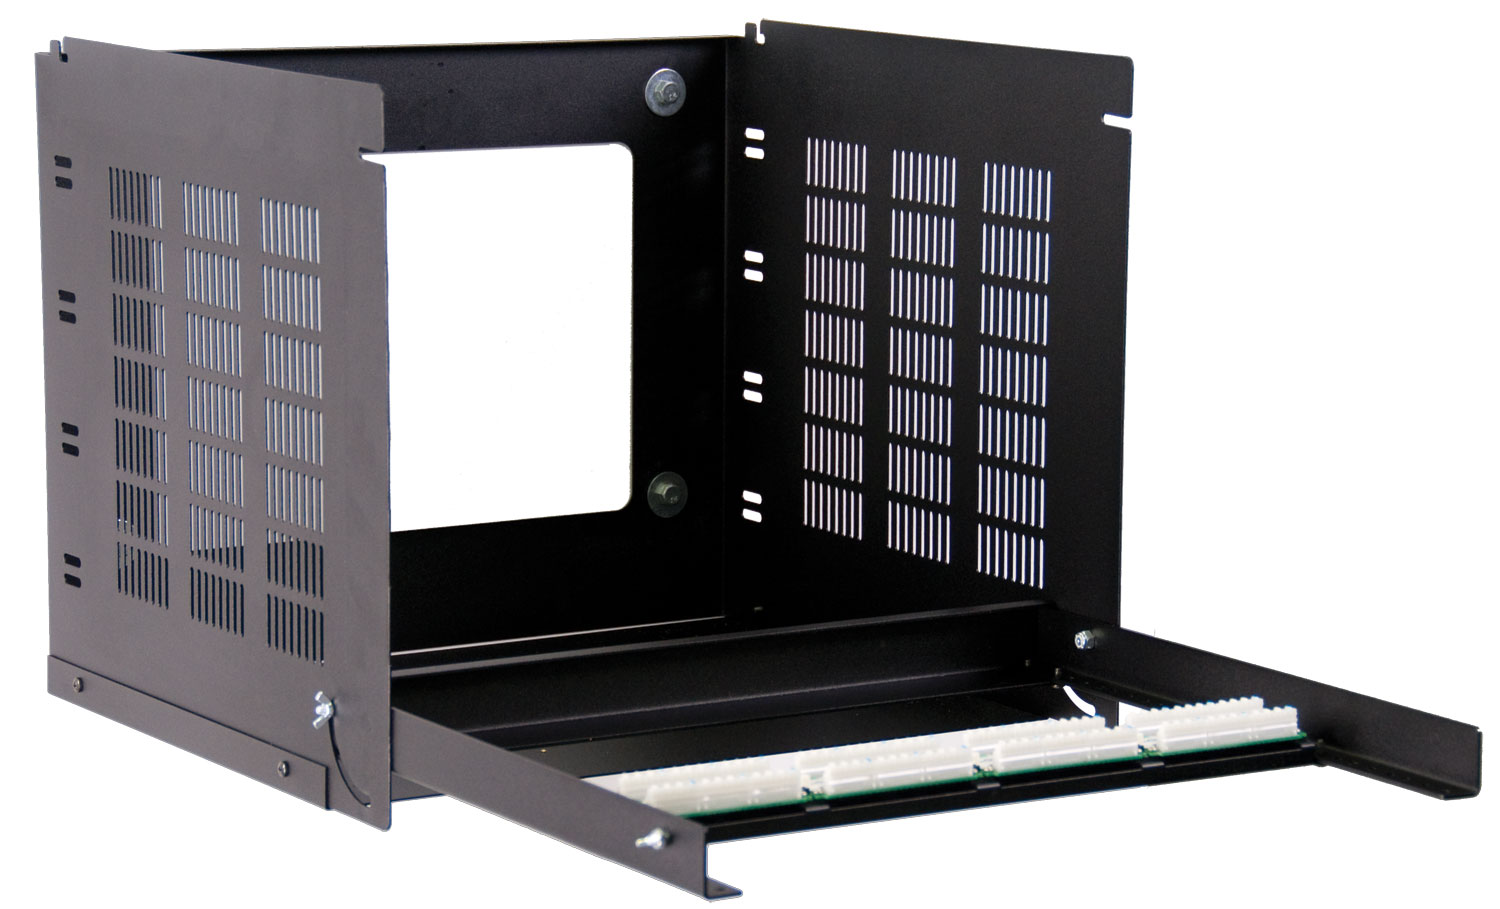 Great_Lakes_Case__Cabinet-_Wall_Mount_Boxes,_Racks_And_Panel_Mounts_For_Small_Networks_1